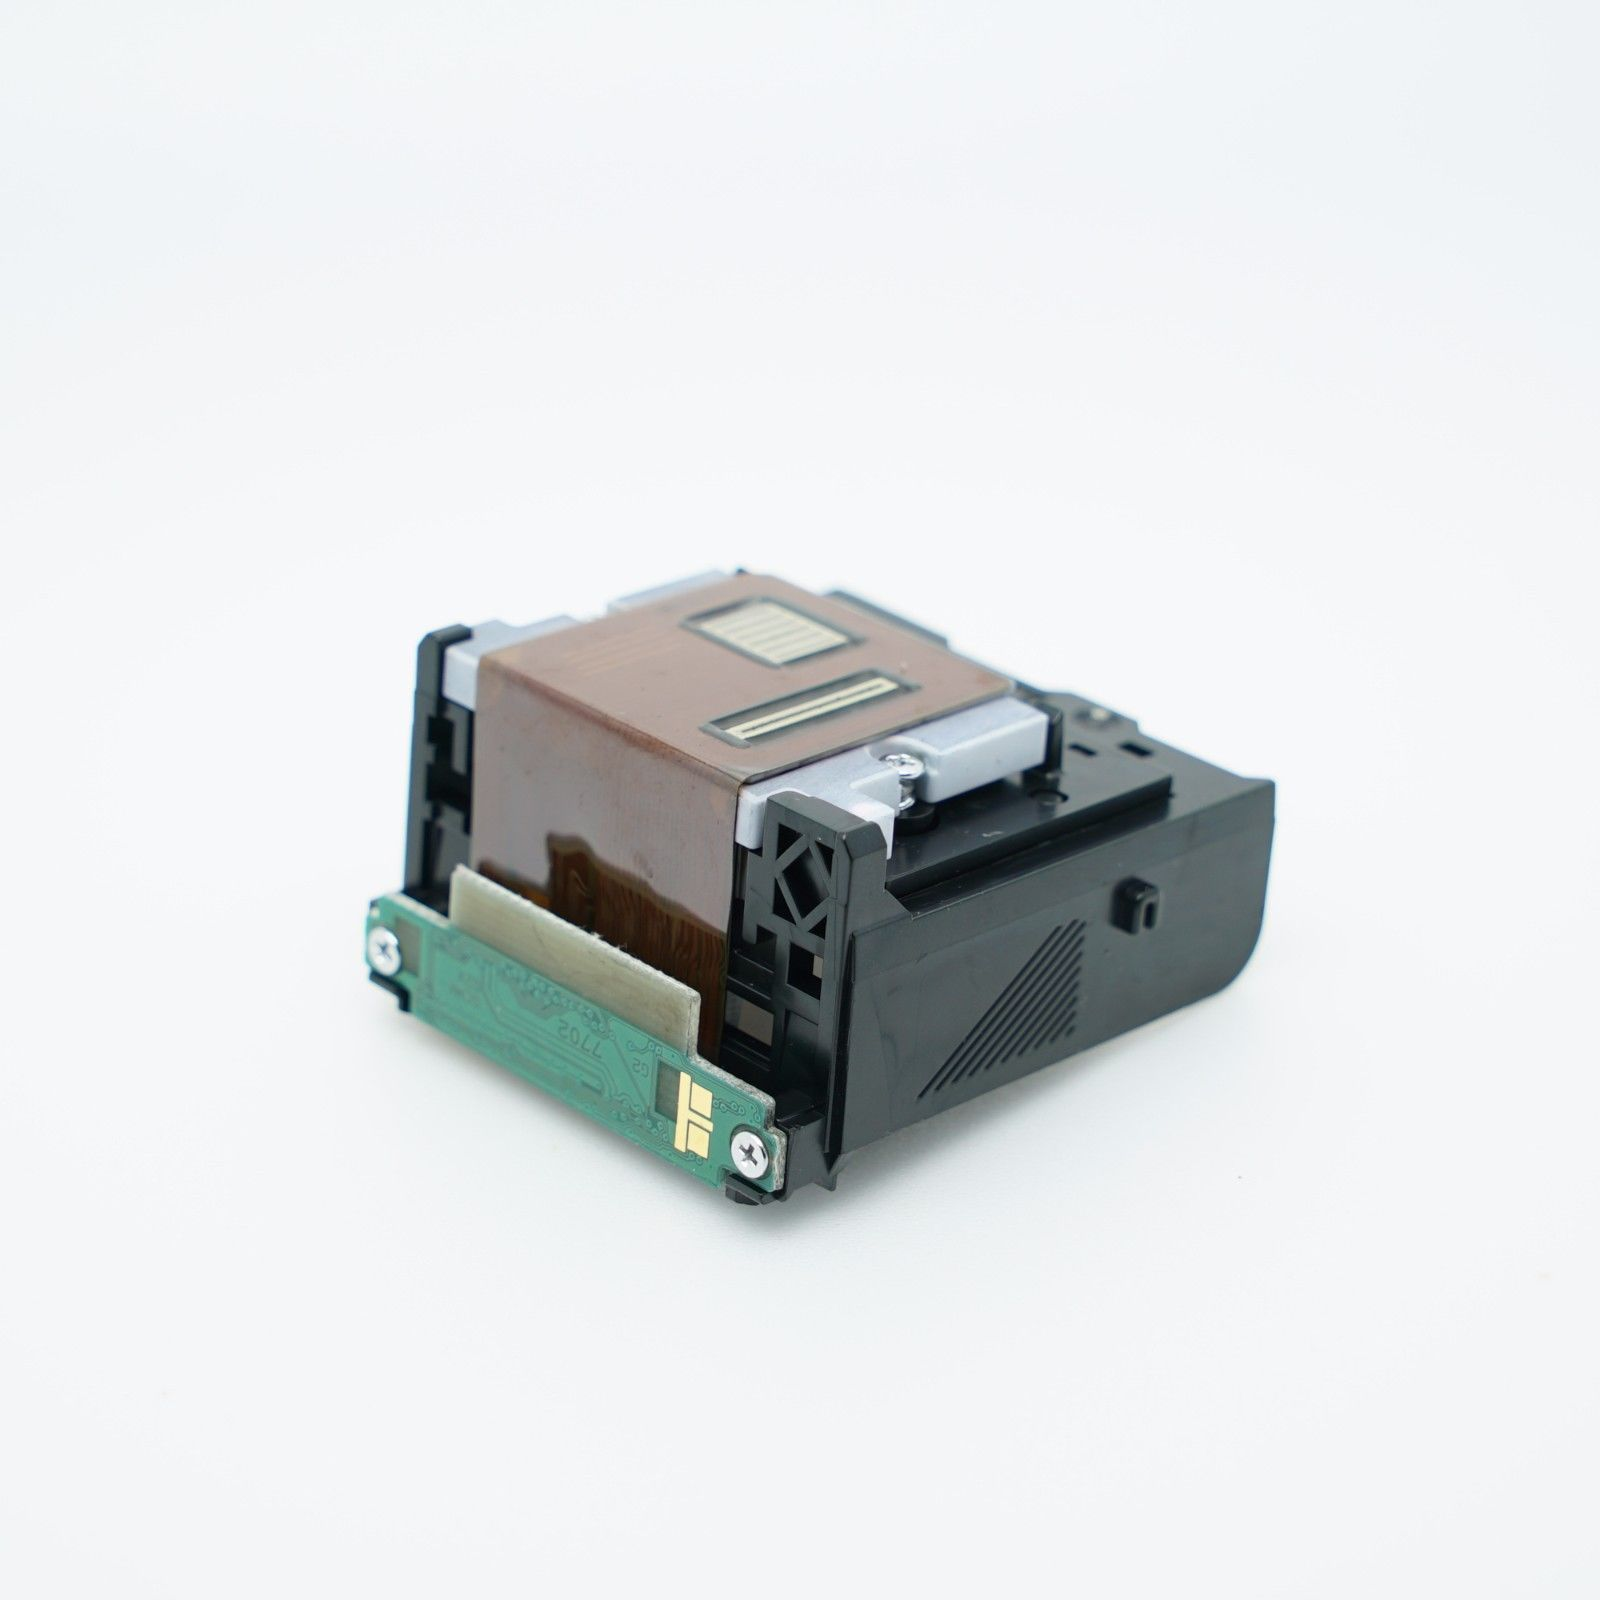 Remarkable Canon Pixma Parts From Computer Office On Alibaba Group Prinad Print Head Prinad Print Head Canon Pixma Canon Pixma Ip100 Printer Manual Canon Pixma Ip100 Print Head dpreview Canon Pixma Ip100